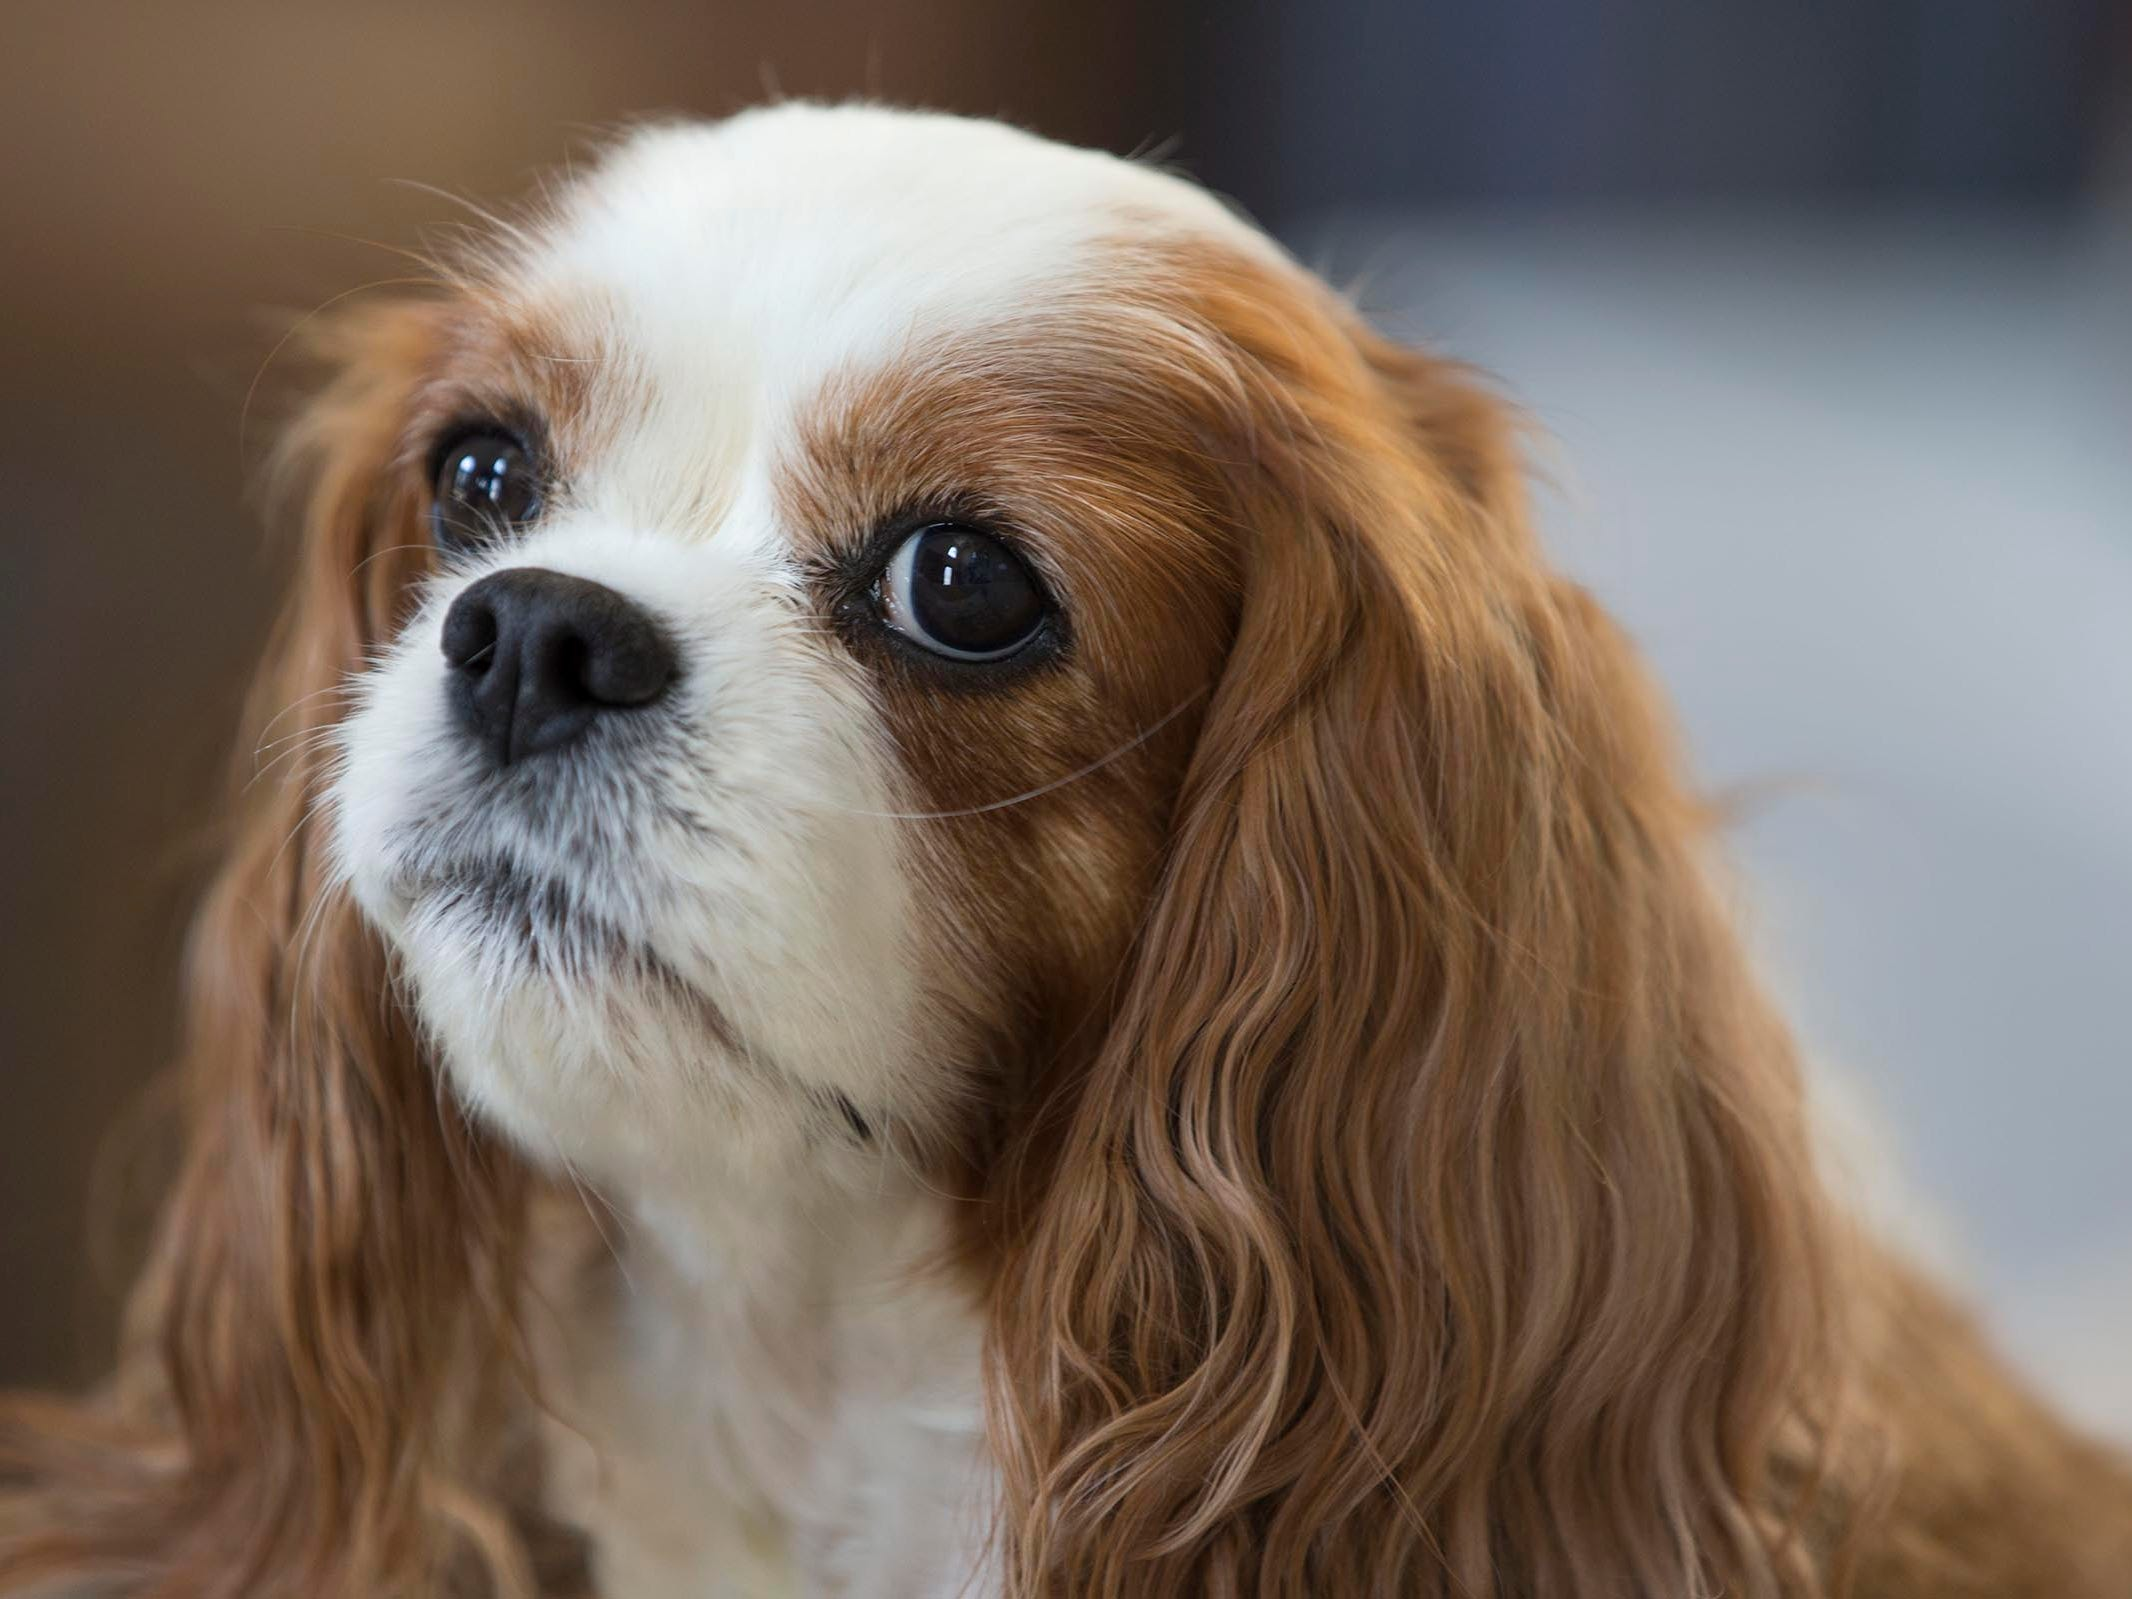 Cathy Cuni of Howell brought her King Charles Cavalier Spaniel to Japan for heart surgery after finding out the dog had a heart murmur along with a severely enlarged heart.  Howell, NJ on Wednesday, July 11, 2018